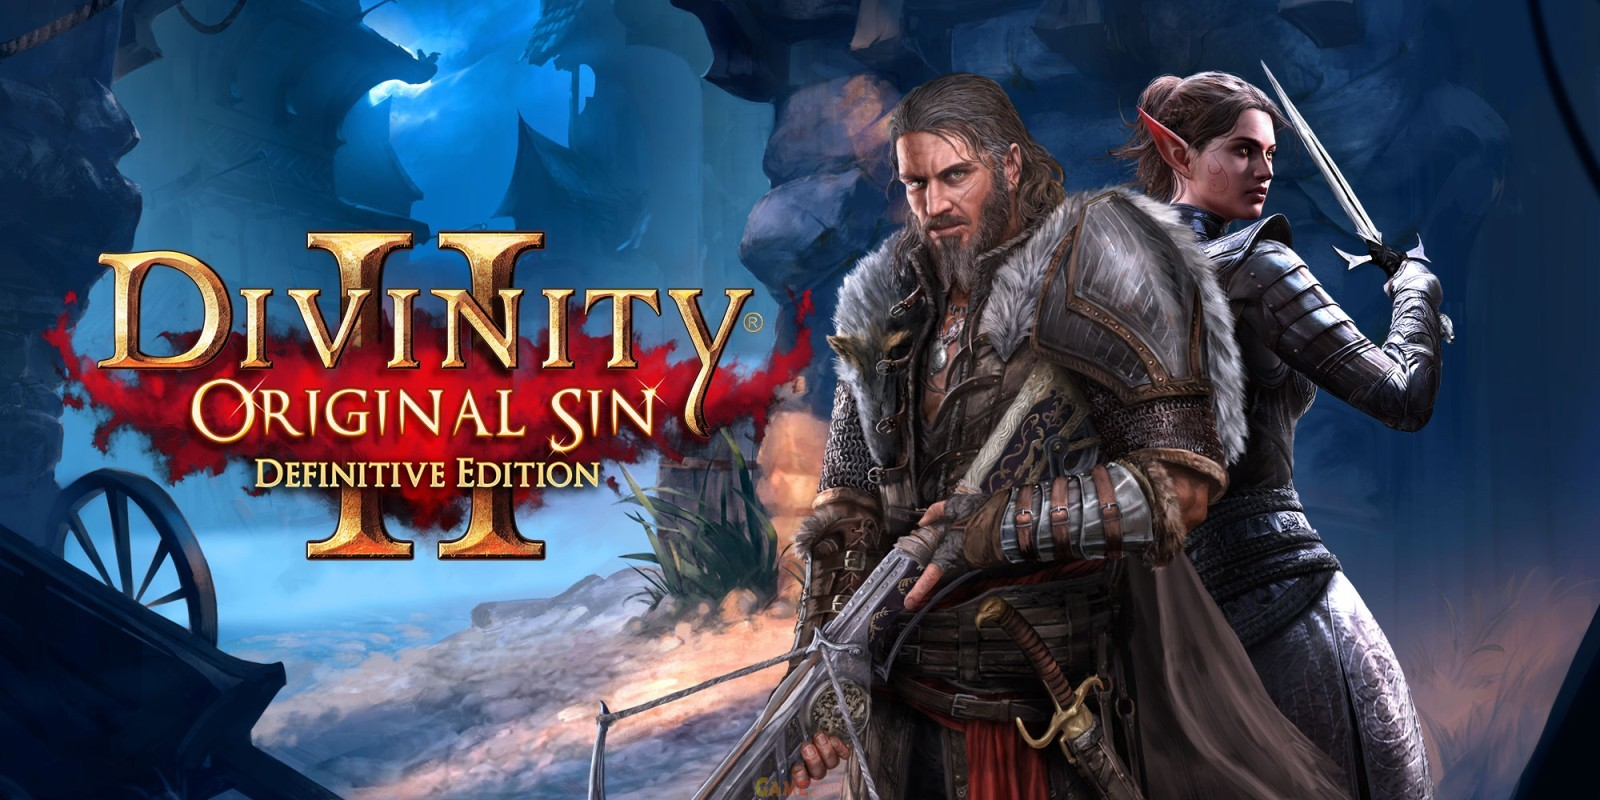 Divinity: Original Sin II Download APK Mobile Android Game Edition